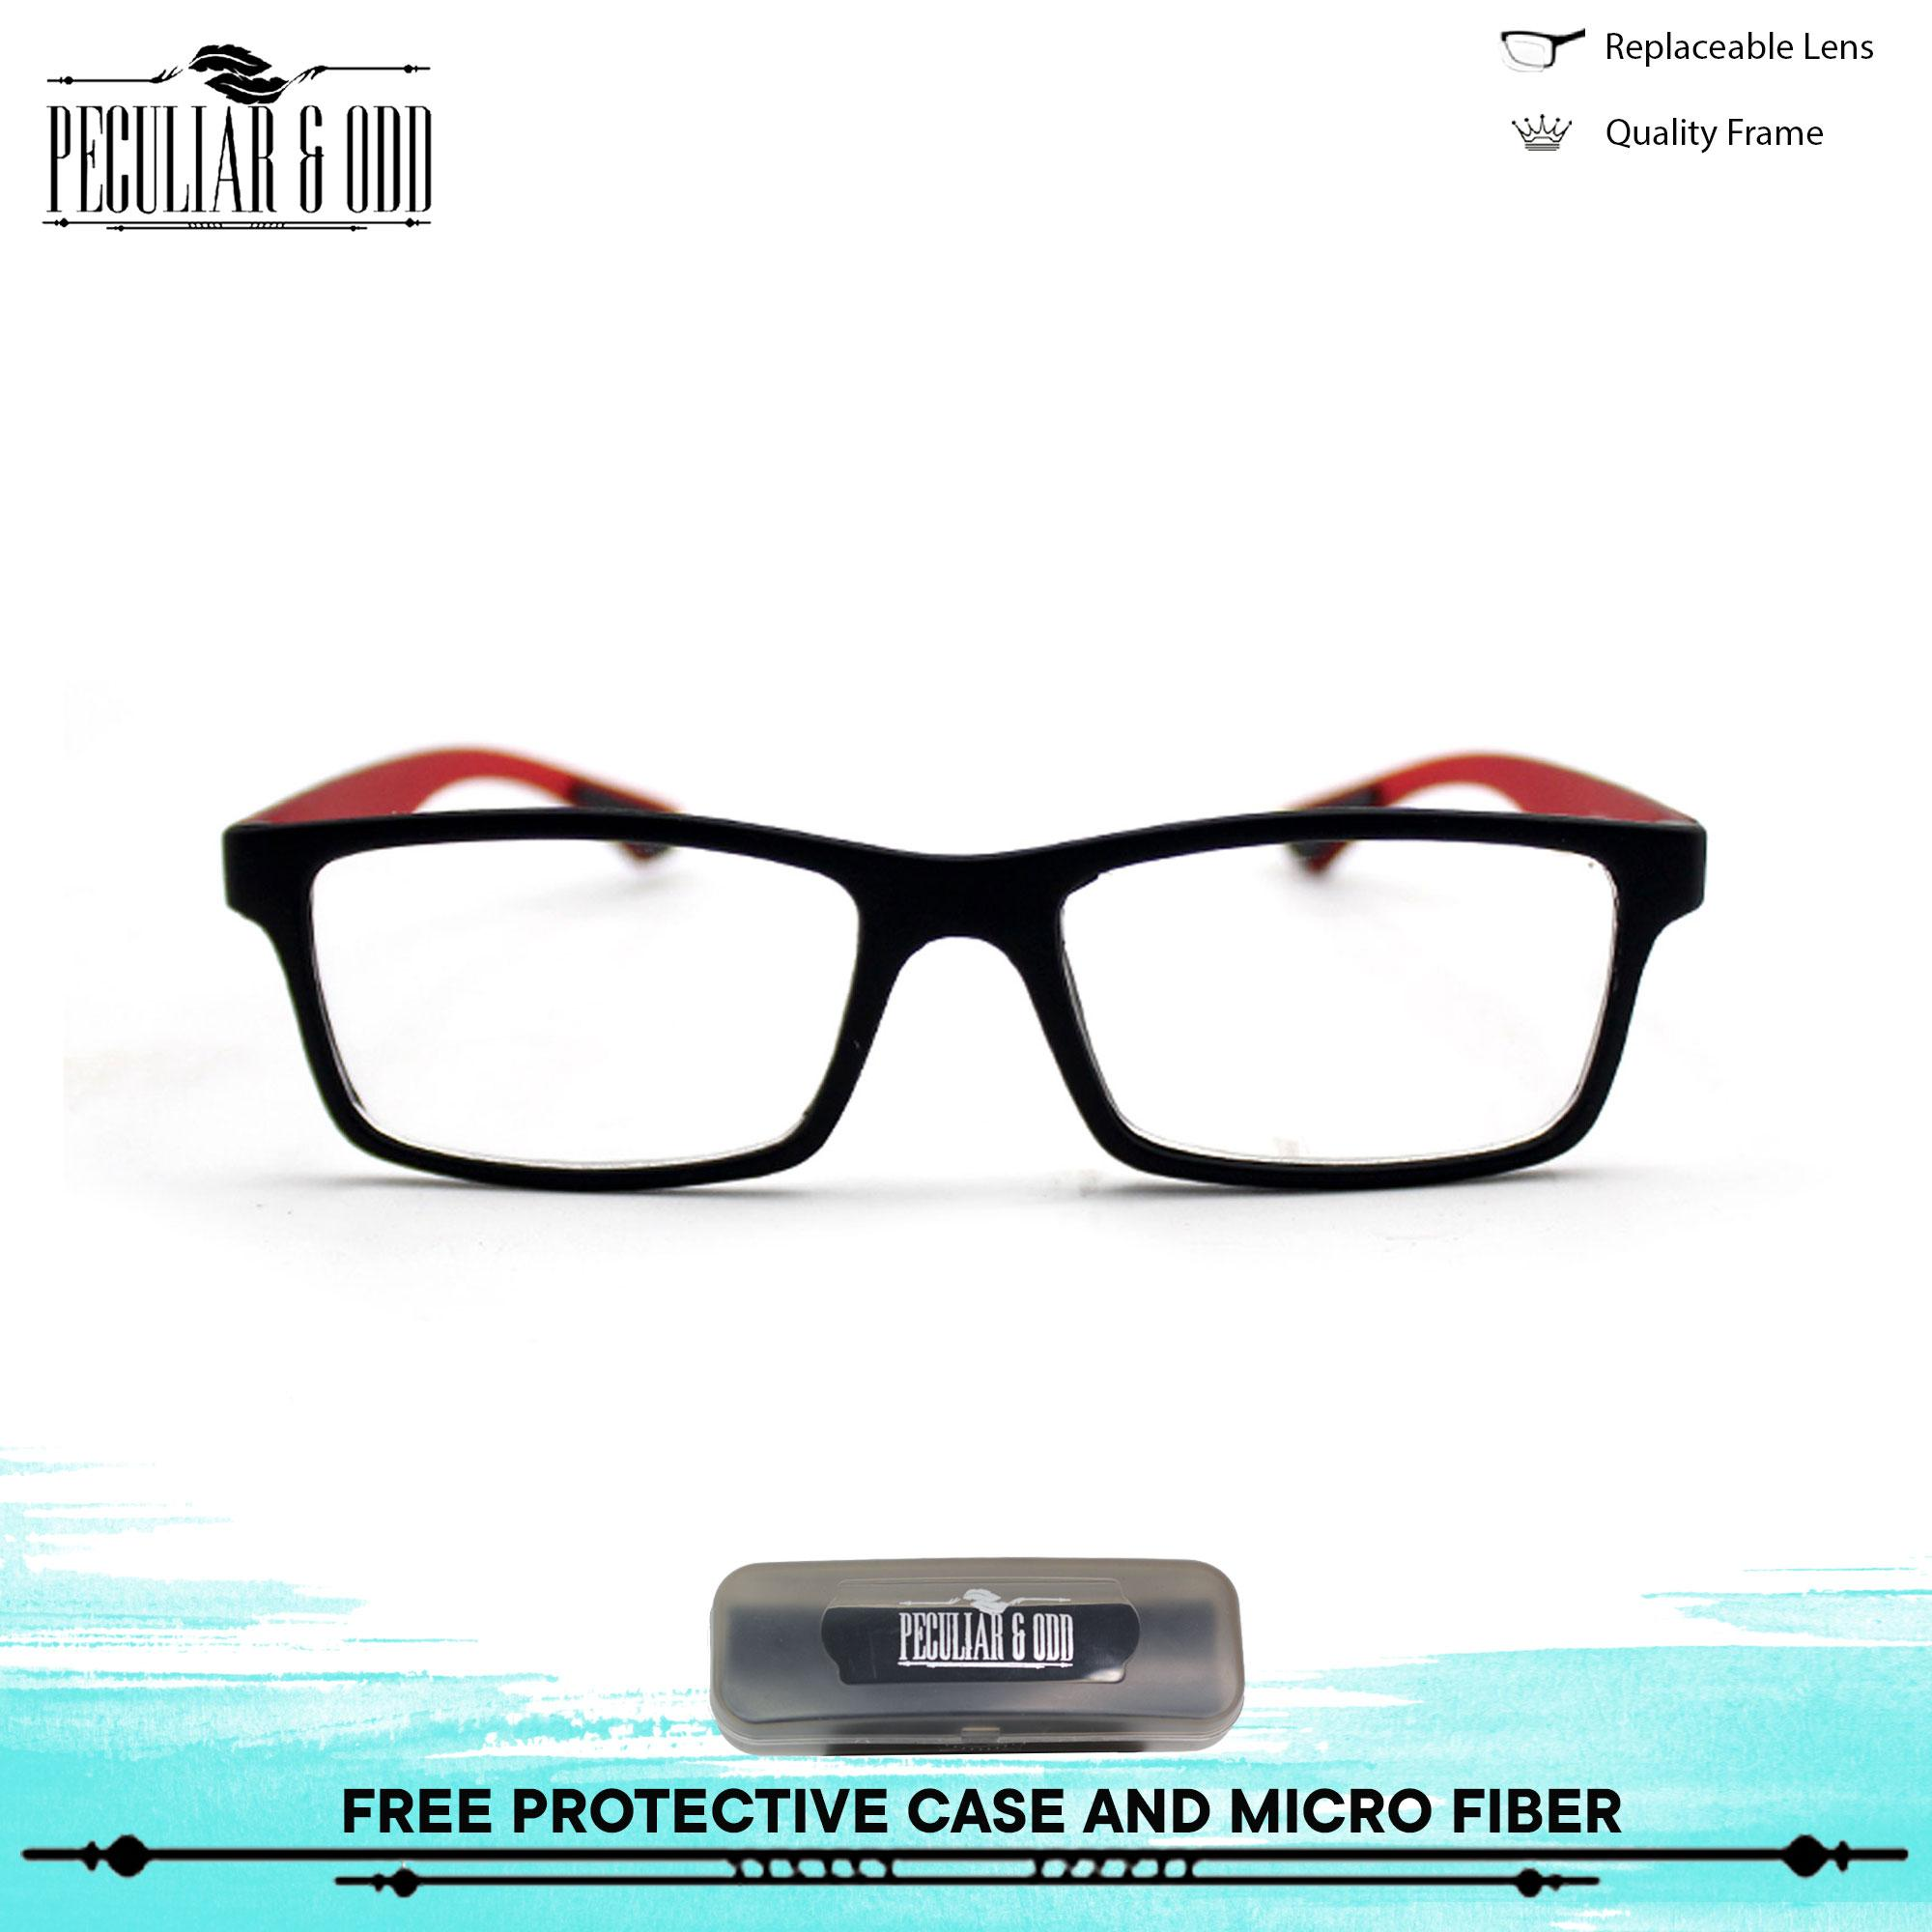 785197c64ca Optical Rubberized Frame 7926 BlackRed Rectangular Computer Eyeglasses Anti  Glare Replaceable Lens with Rubberized Template Stopper Unisex